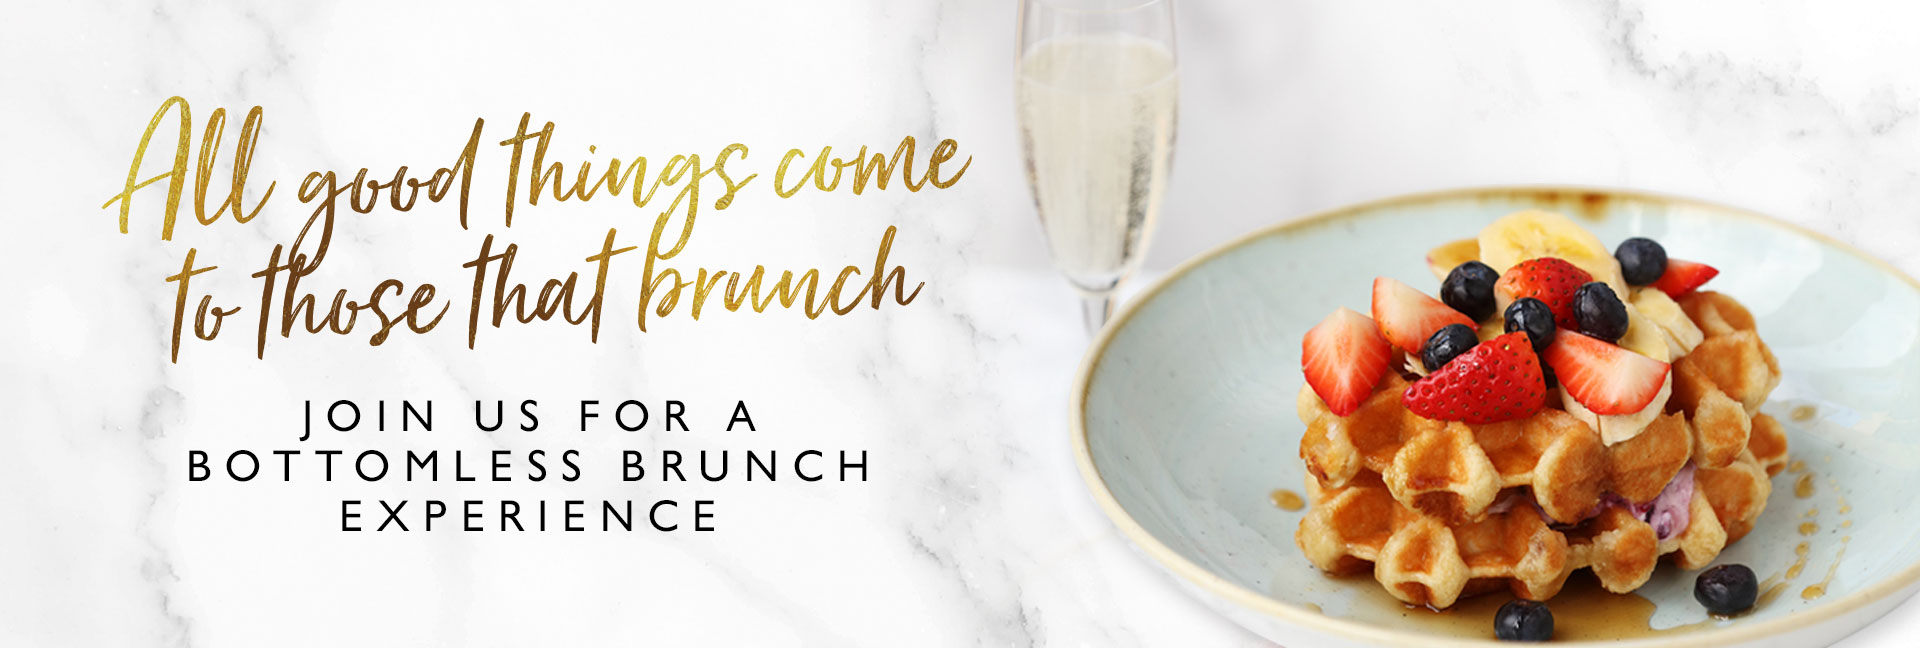 Bottomless Brunch at All Bar One Victoria - Book now